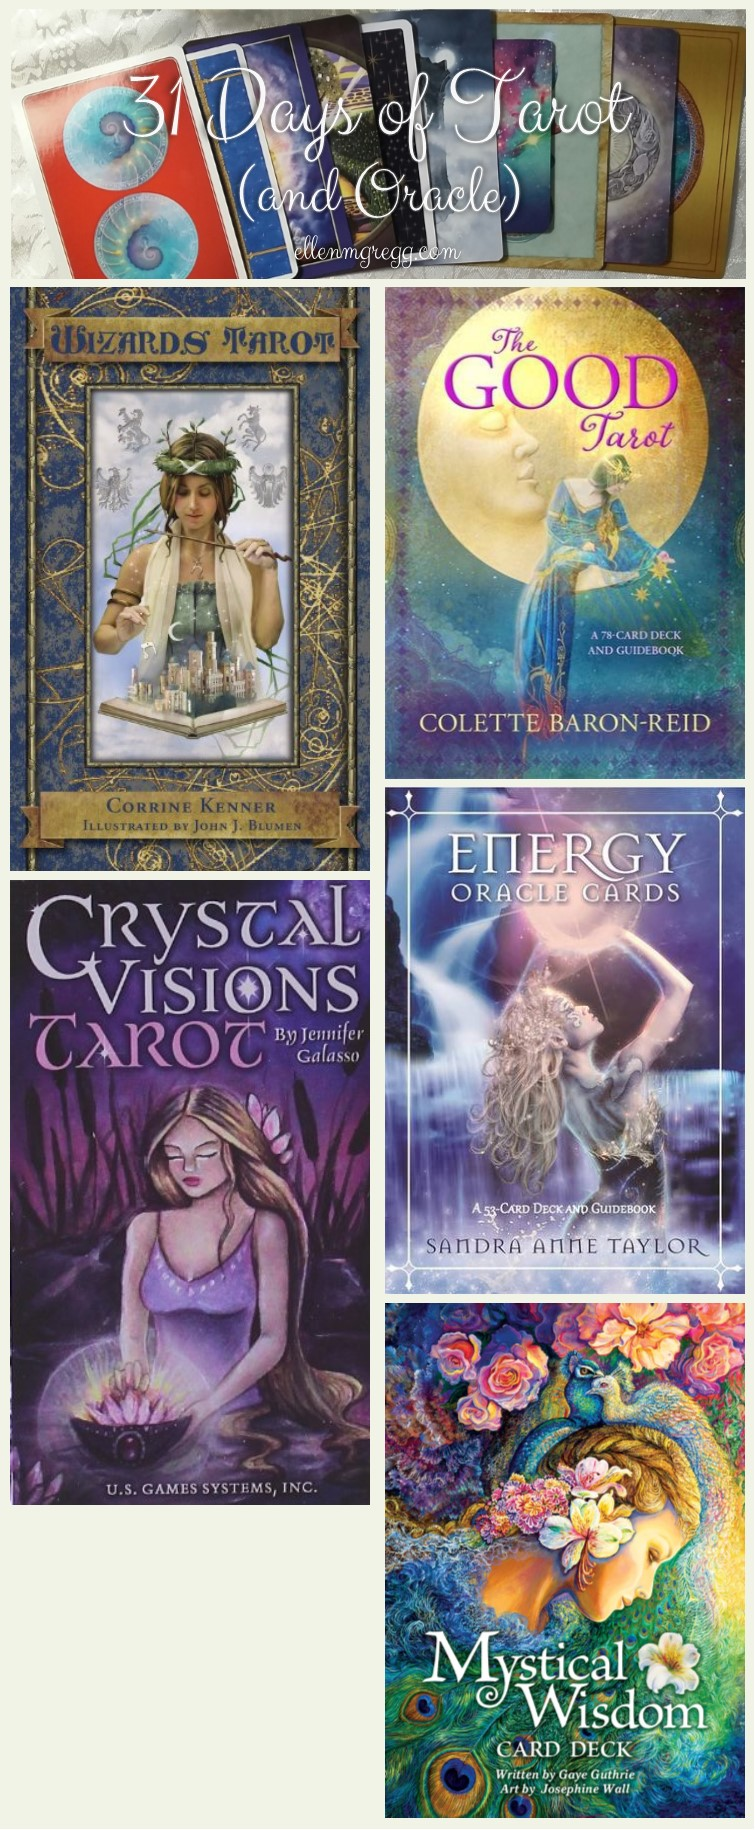 31 Days of Tarot, Day 9: The top 5 decks on my wish list are: Wizards Tarot, The Good Tarot, Crystal Visions Tarot, Energy Oracle Cards and Mystical Wisdom Card Deck